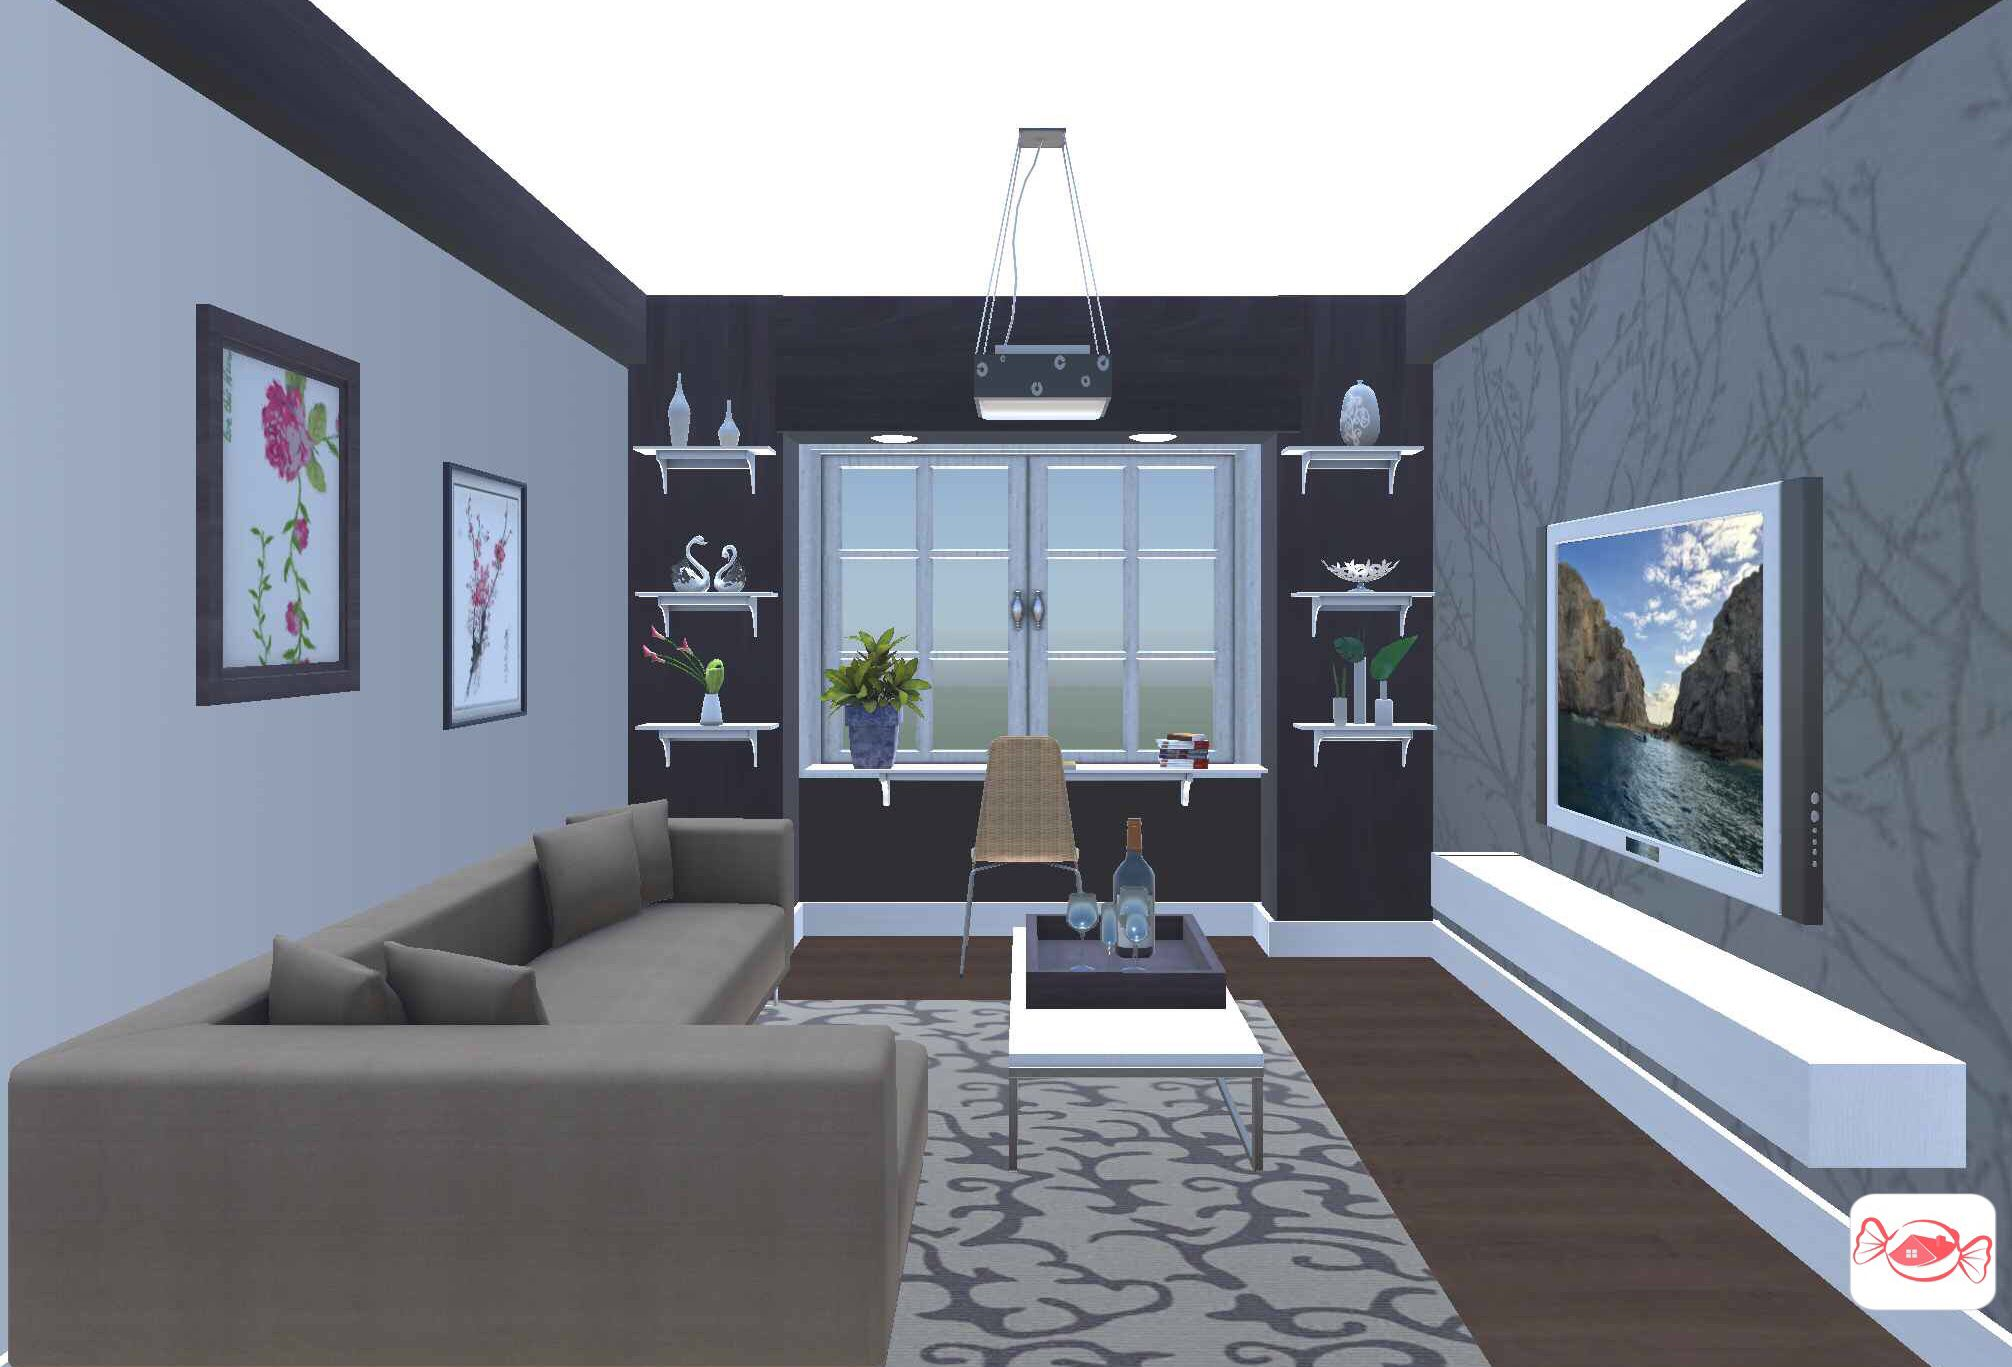 Luxury In Small Space Created With Home Sweet Home 3d App Design